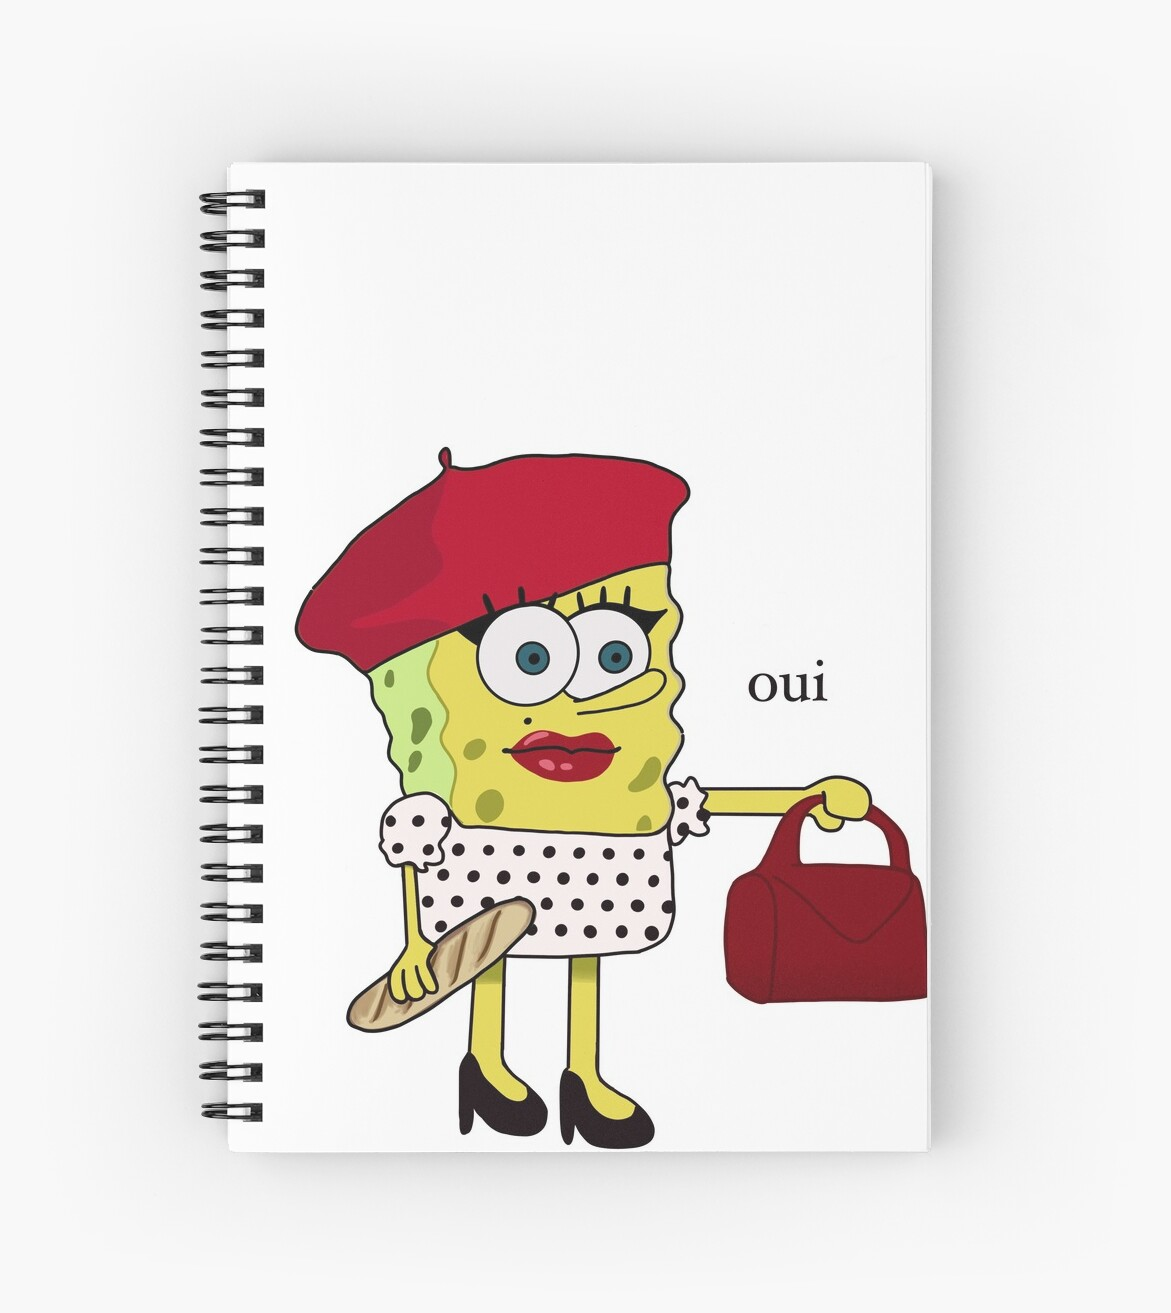 French Spongebob With Oui Spiral Notebook By Peytonimore Redbubble